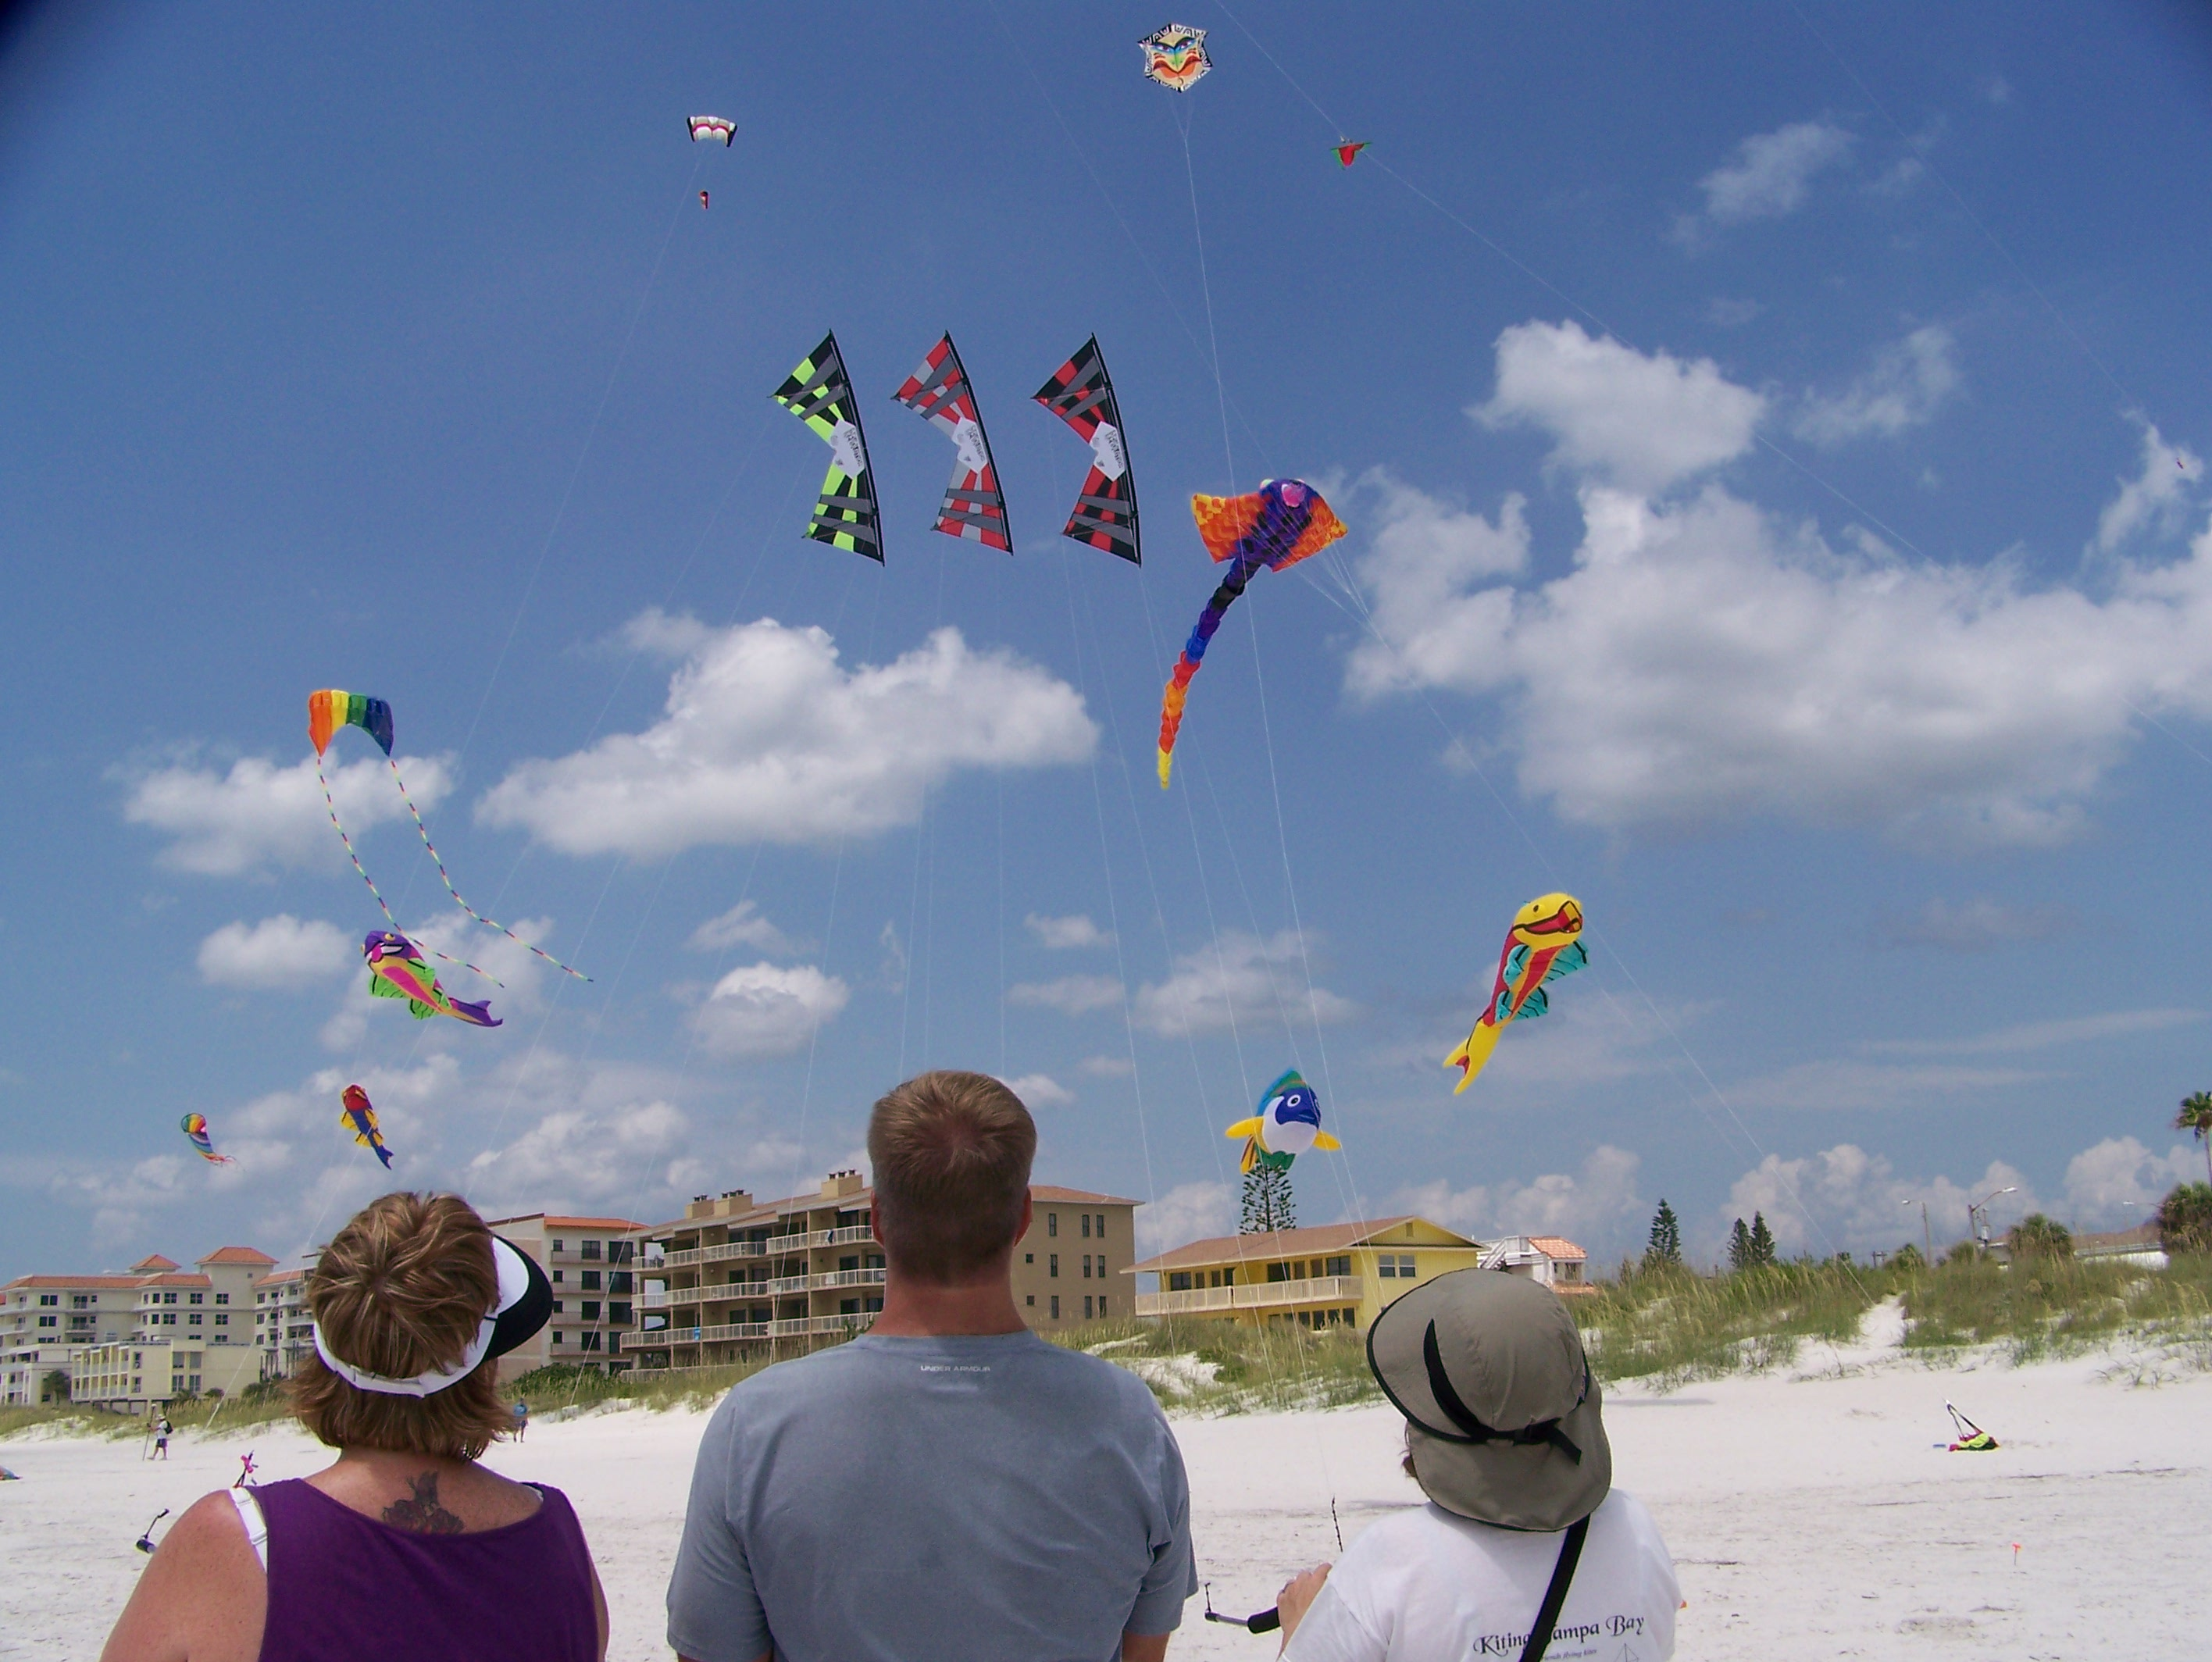 Kiting TampaBay flying Kites at Pier 60. Come fly with us!